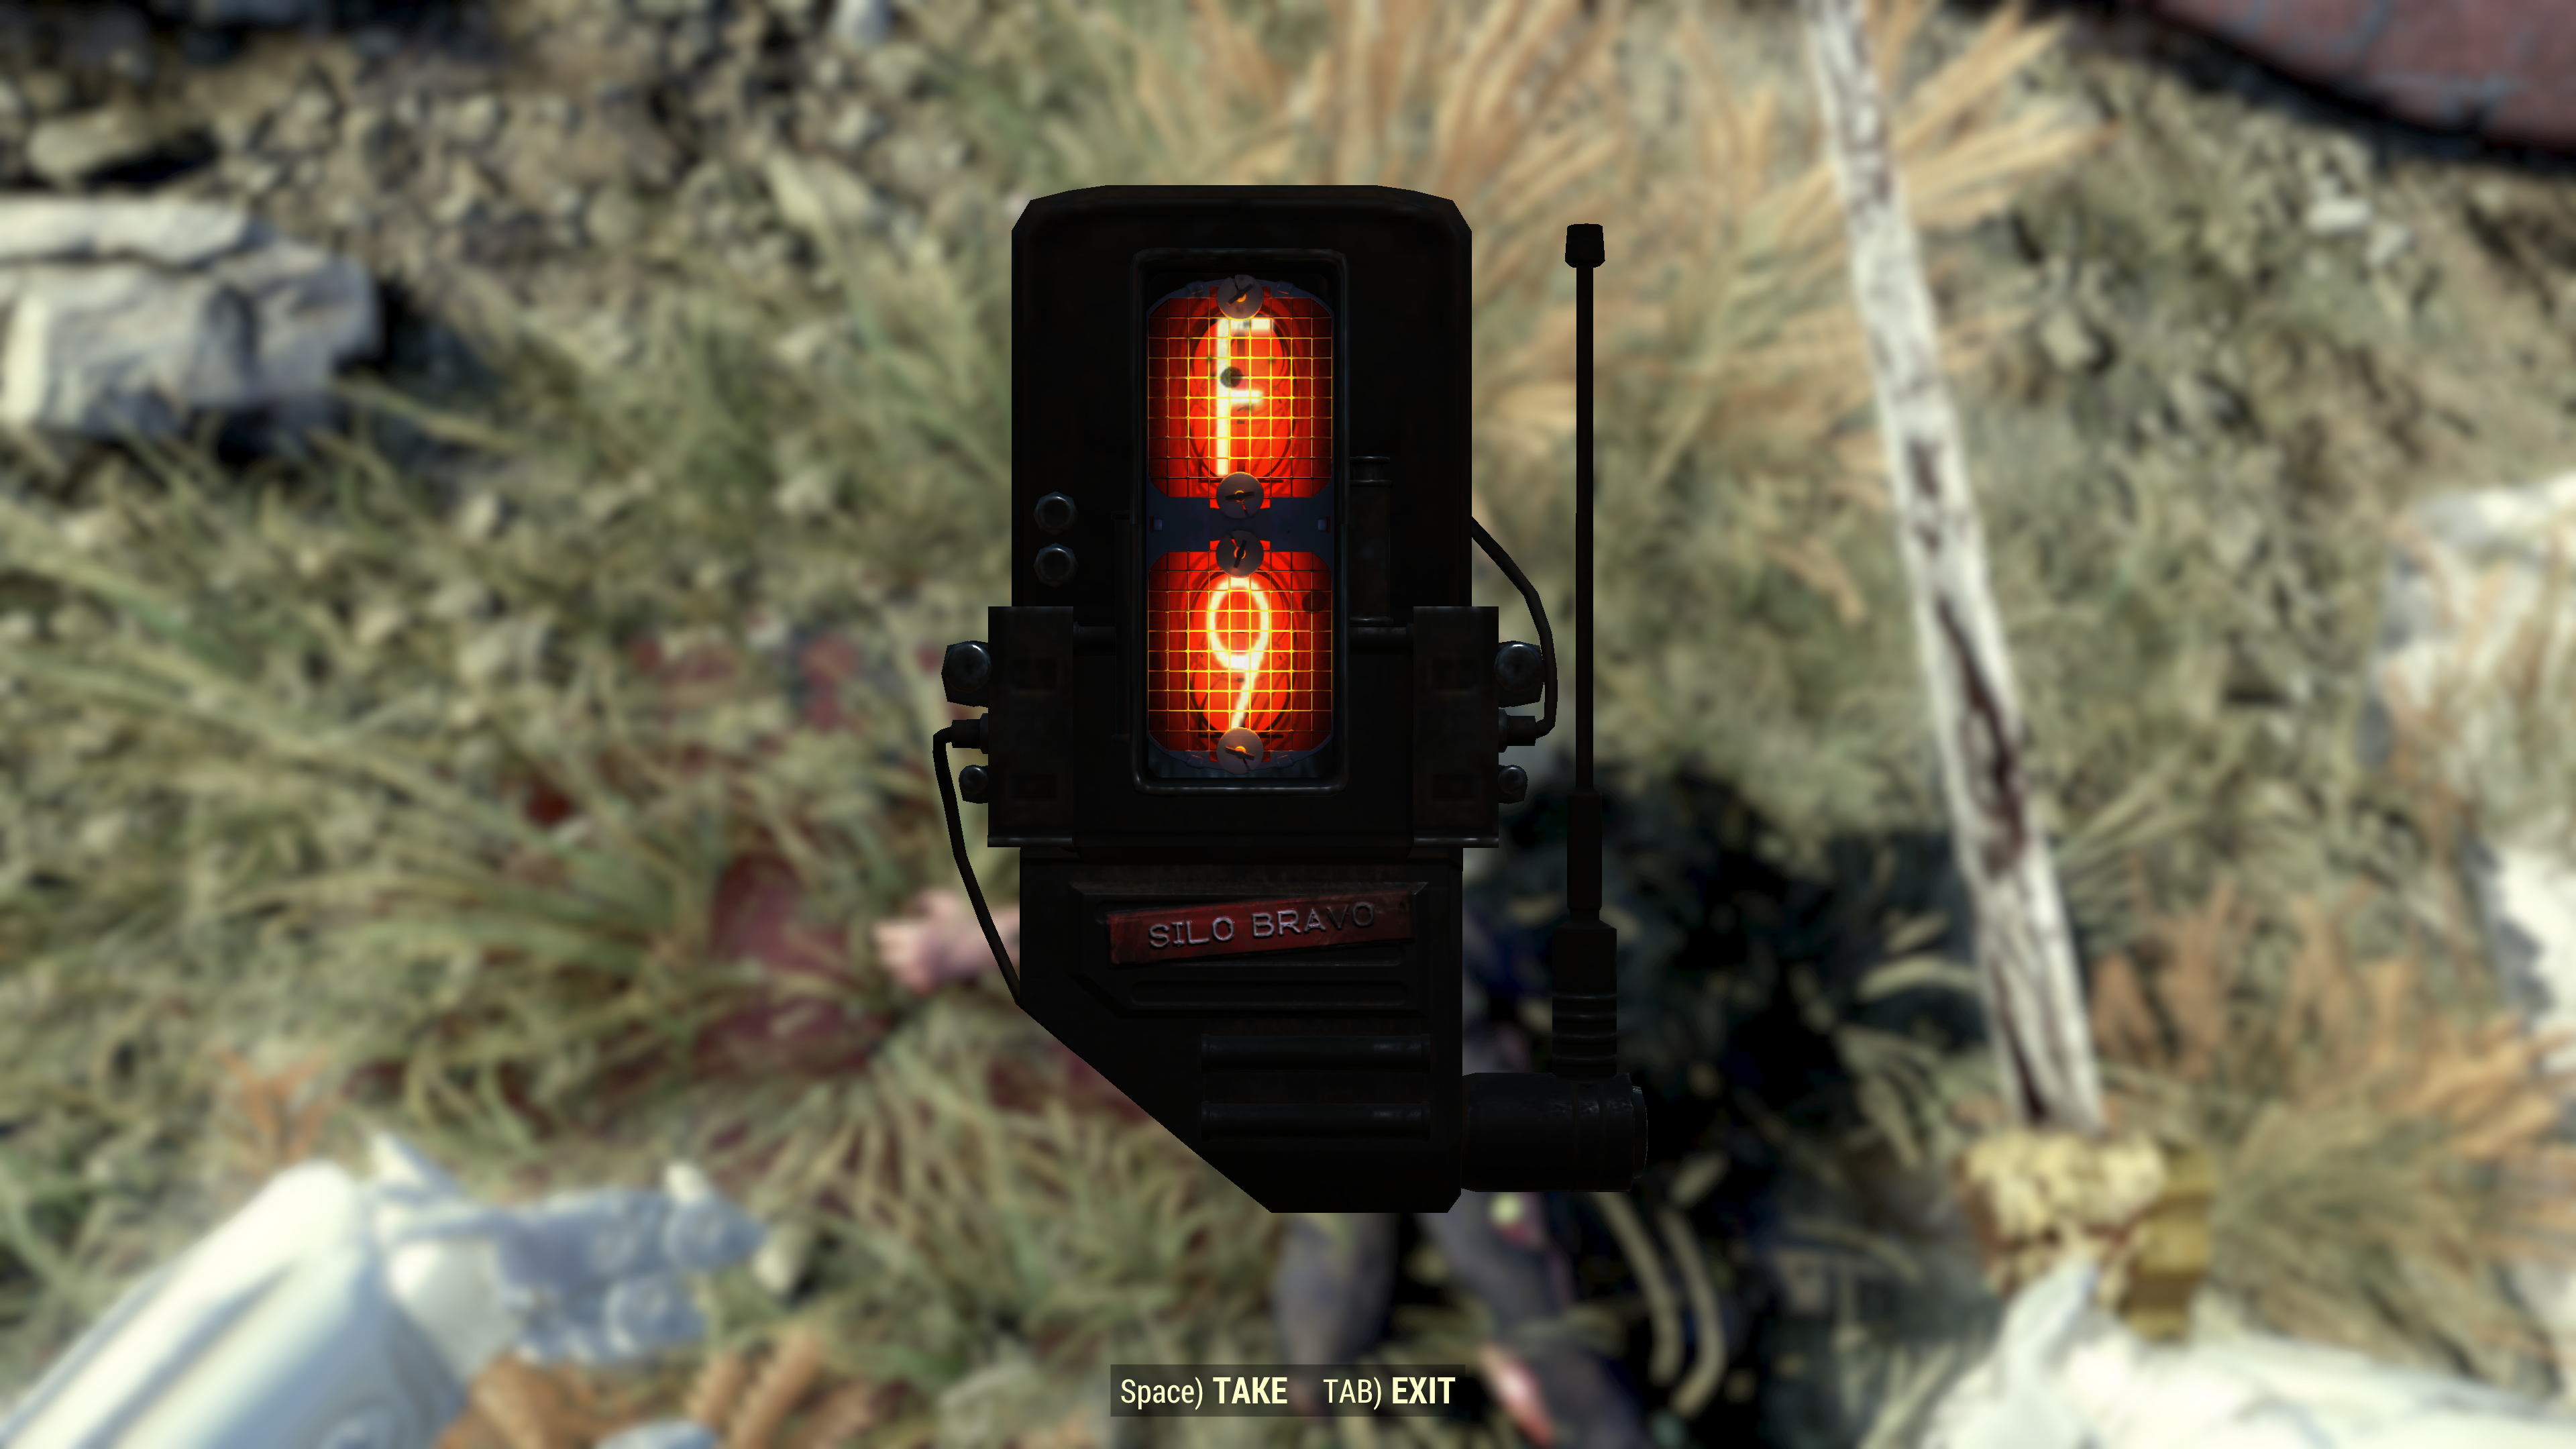 Fallout 76 Nuke Guide: how to join the Enclave, crack the code and